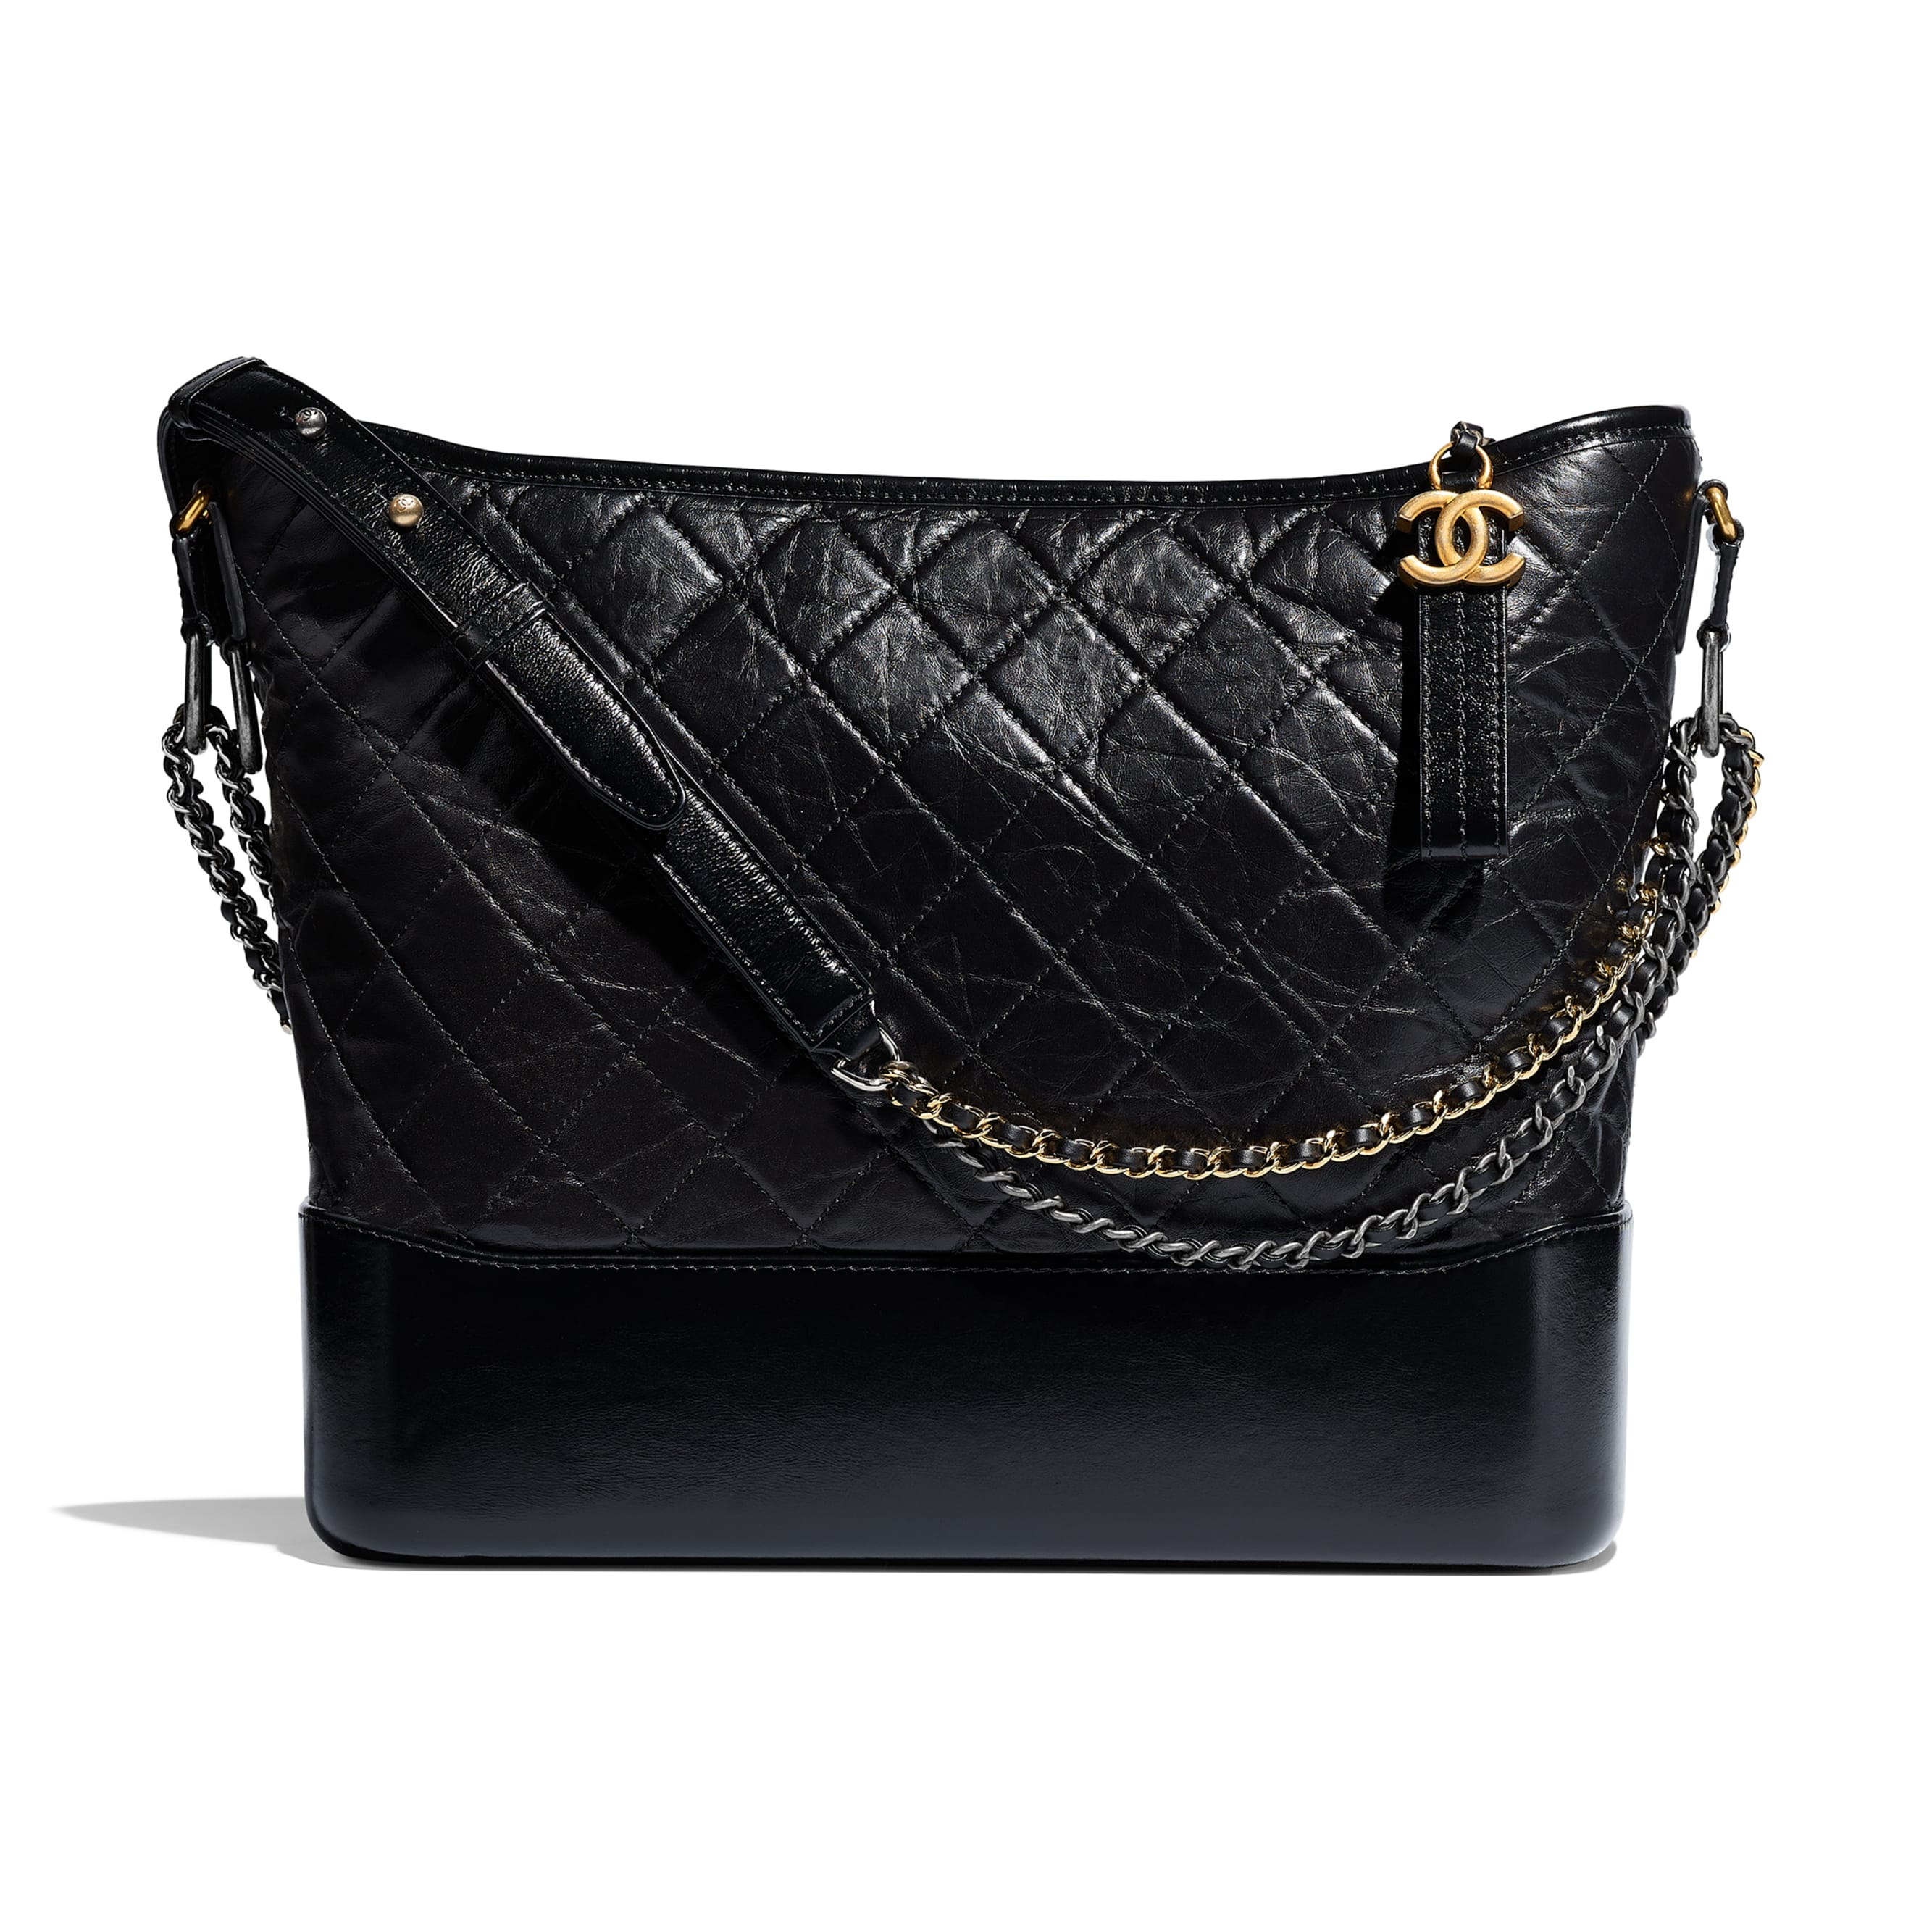 CHANEL'S GABRIELLE Maxi Hobo - Black - Aged Calfskin, Smooth Calfskin, Silver-Tone & Gold-Tone Metal - Default view - see standard sized version